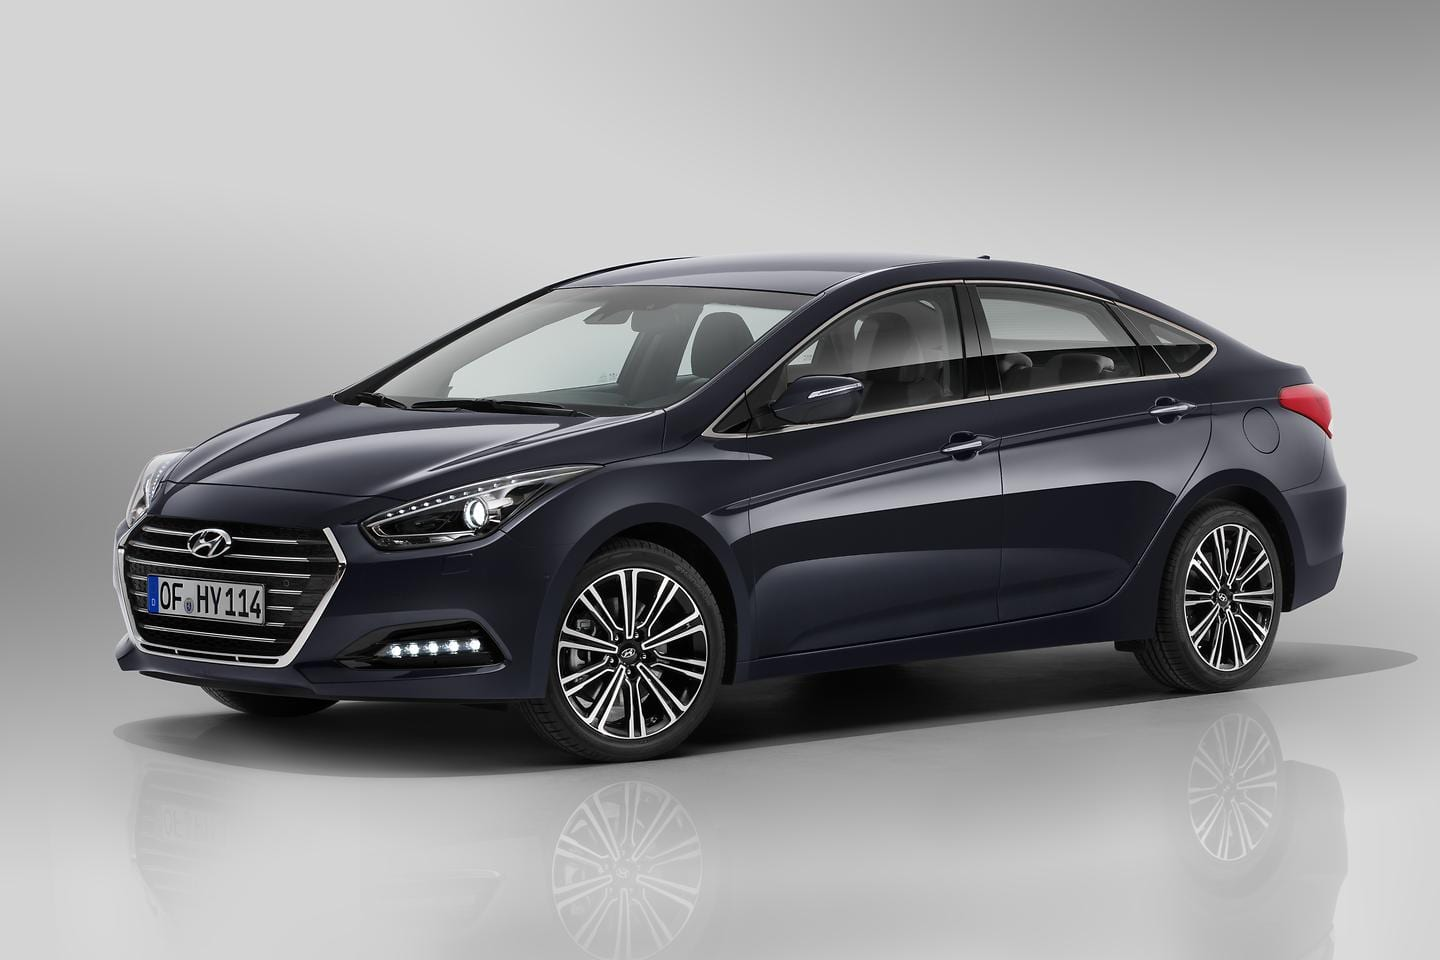 New Hyundai i40 Press Info